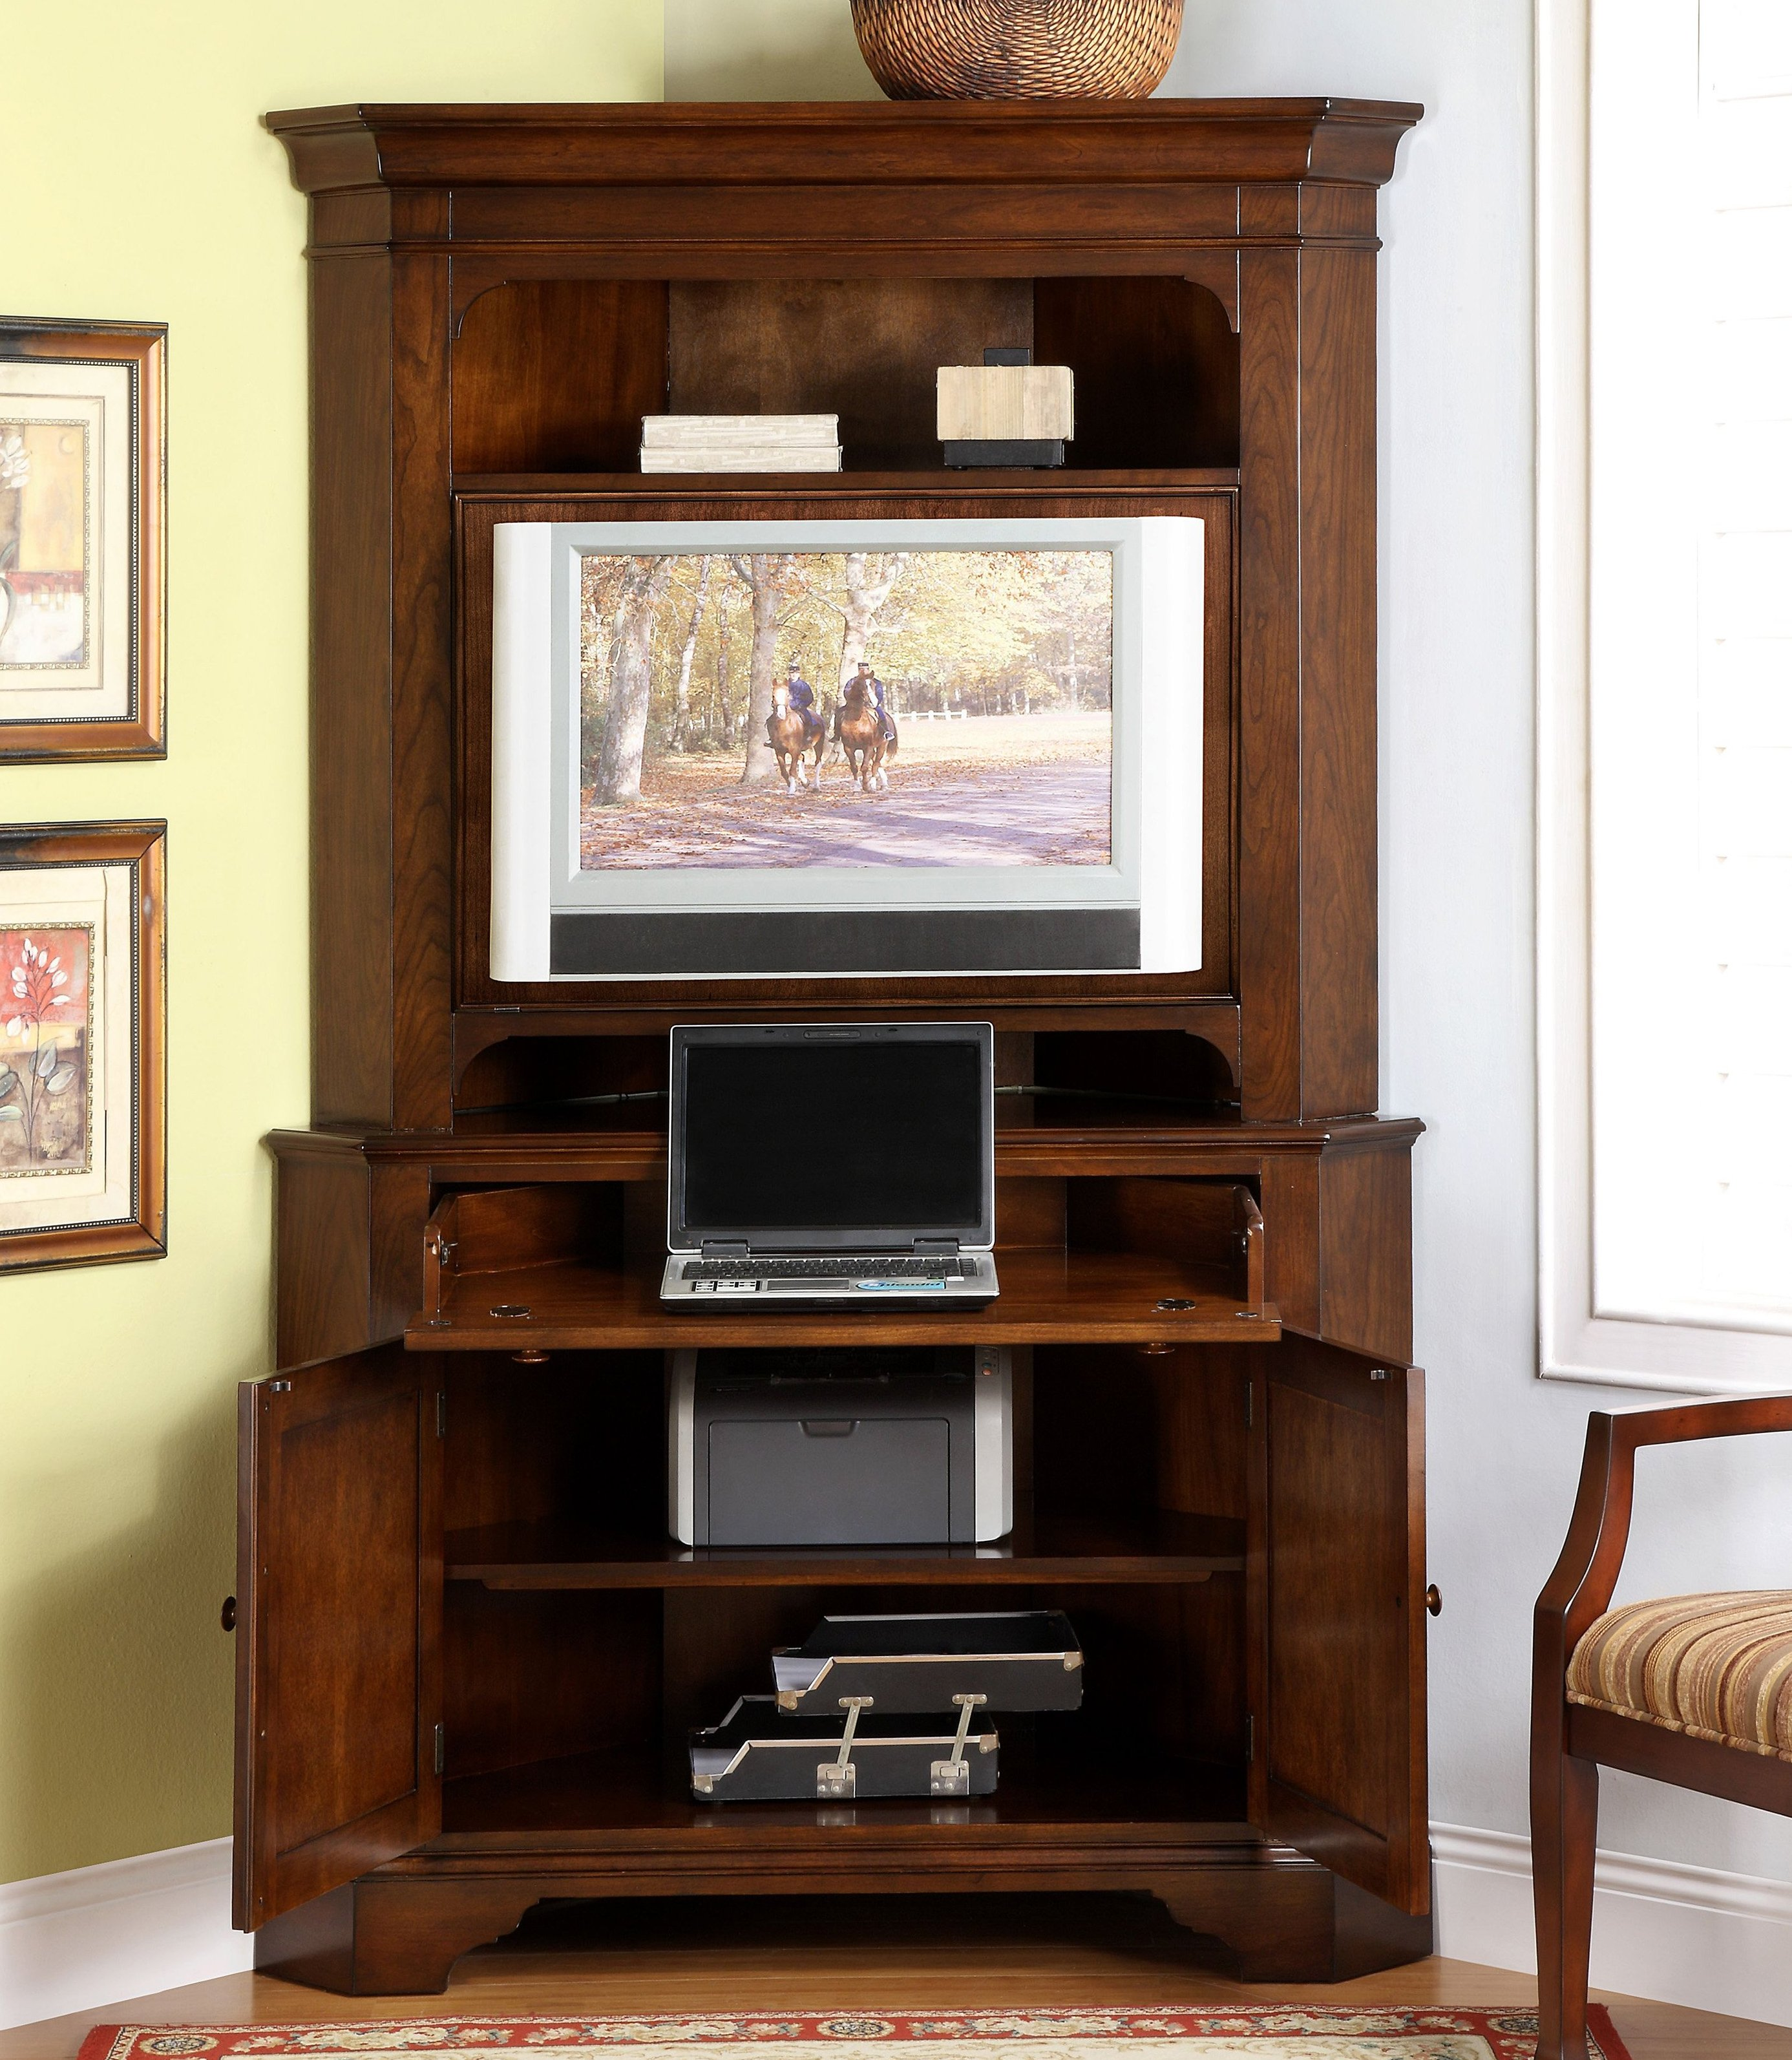 Computer Armoire From Red Cherry Wood with tv stand for your compact home office